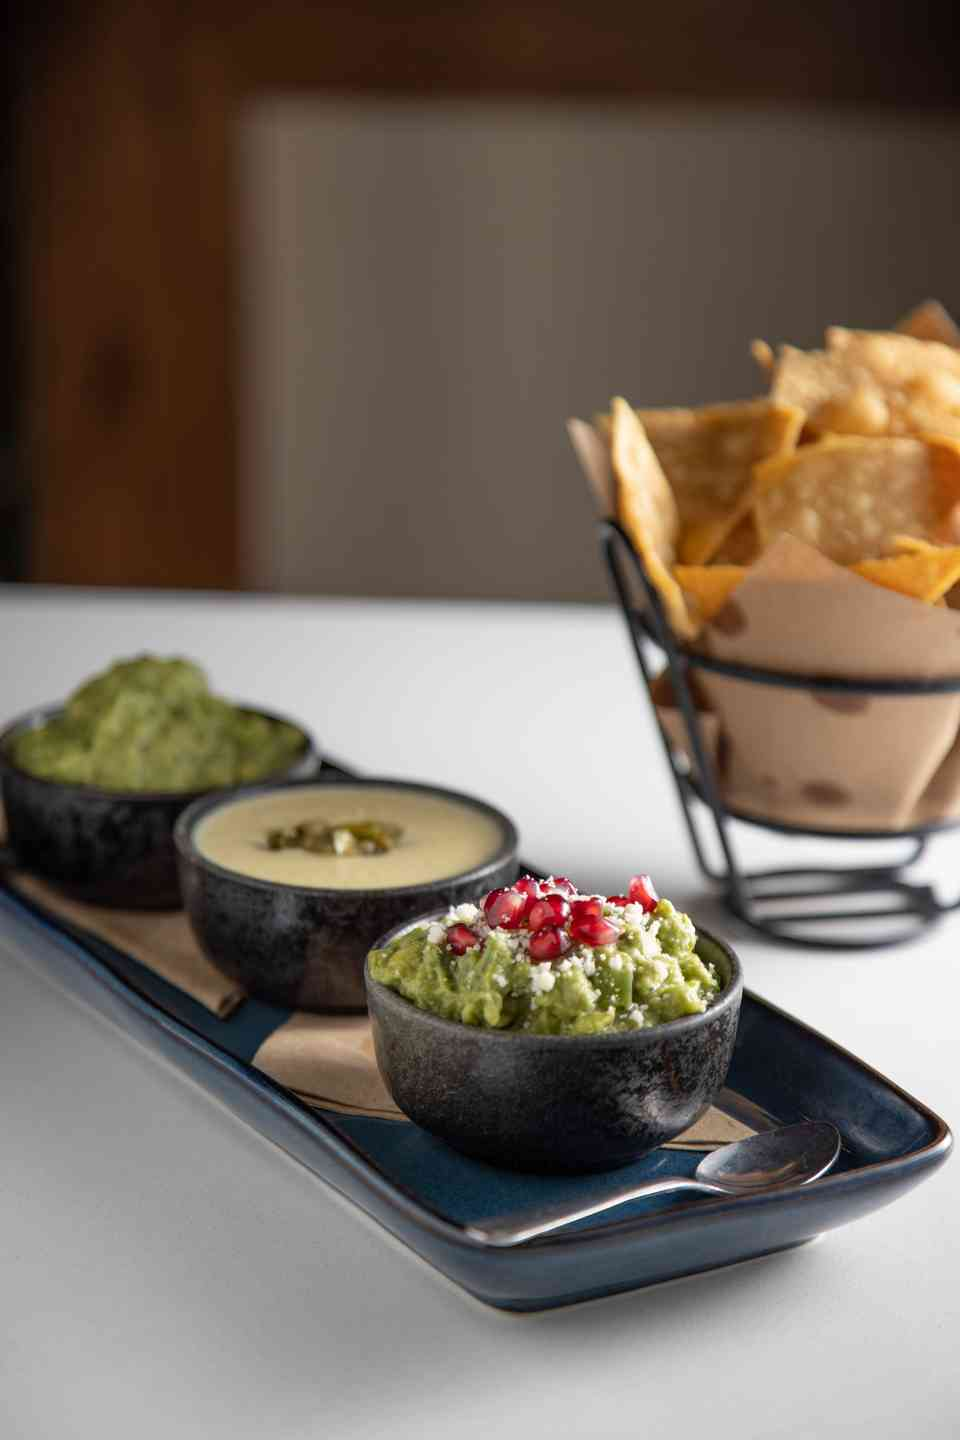 Guacamole/Dip Tasting for 3